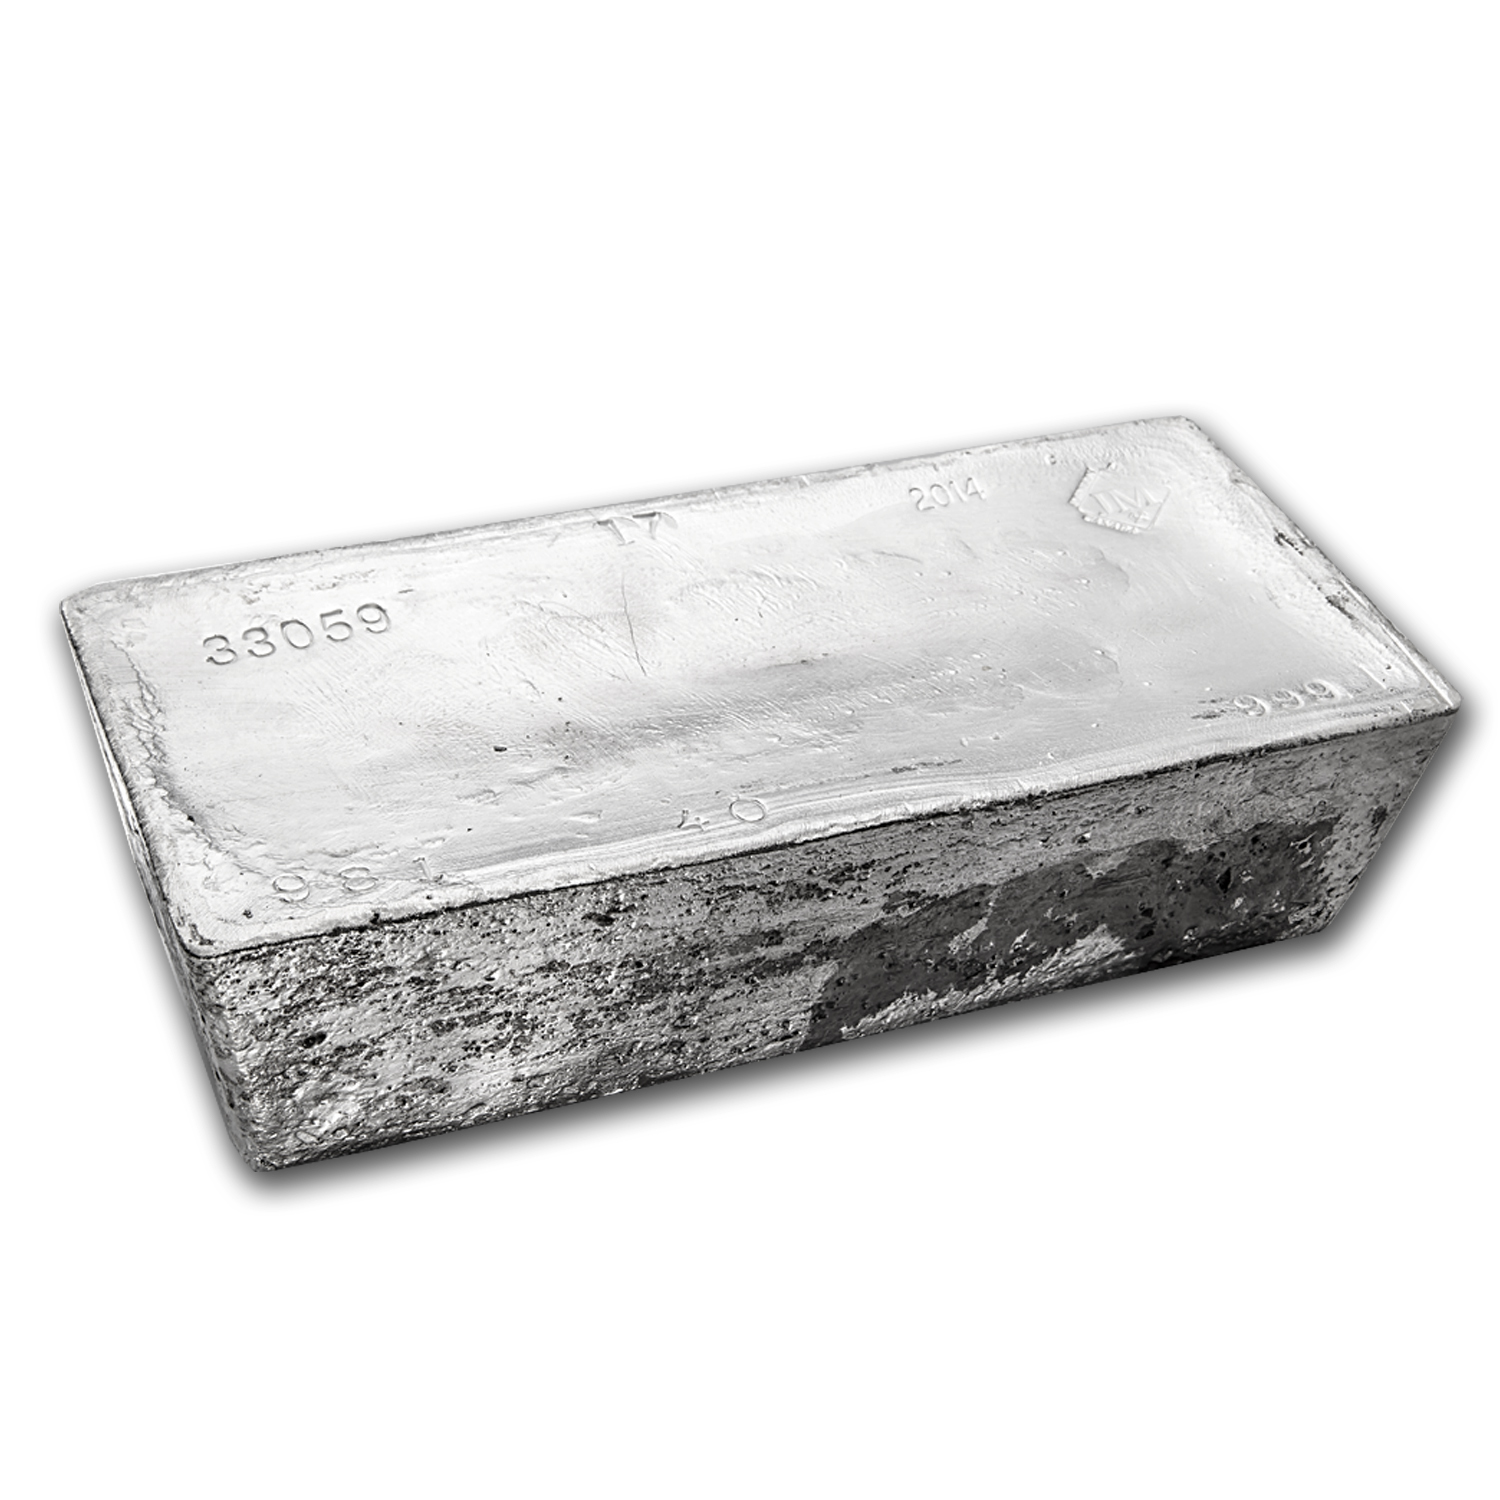 998.38 oz Silver Bar - OPM (#10-2504)